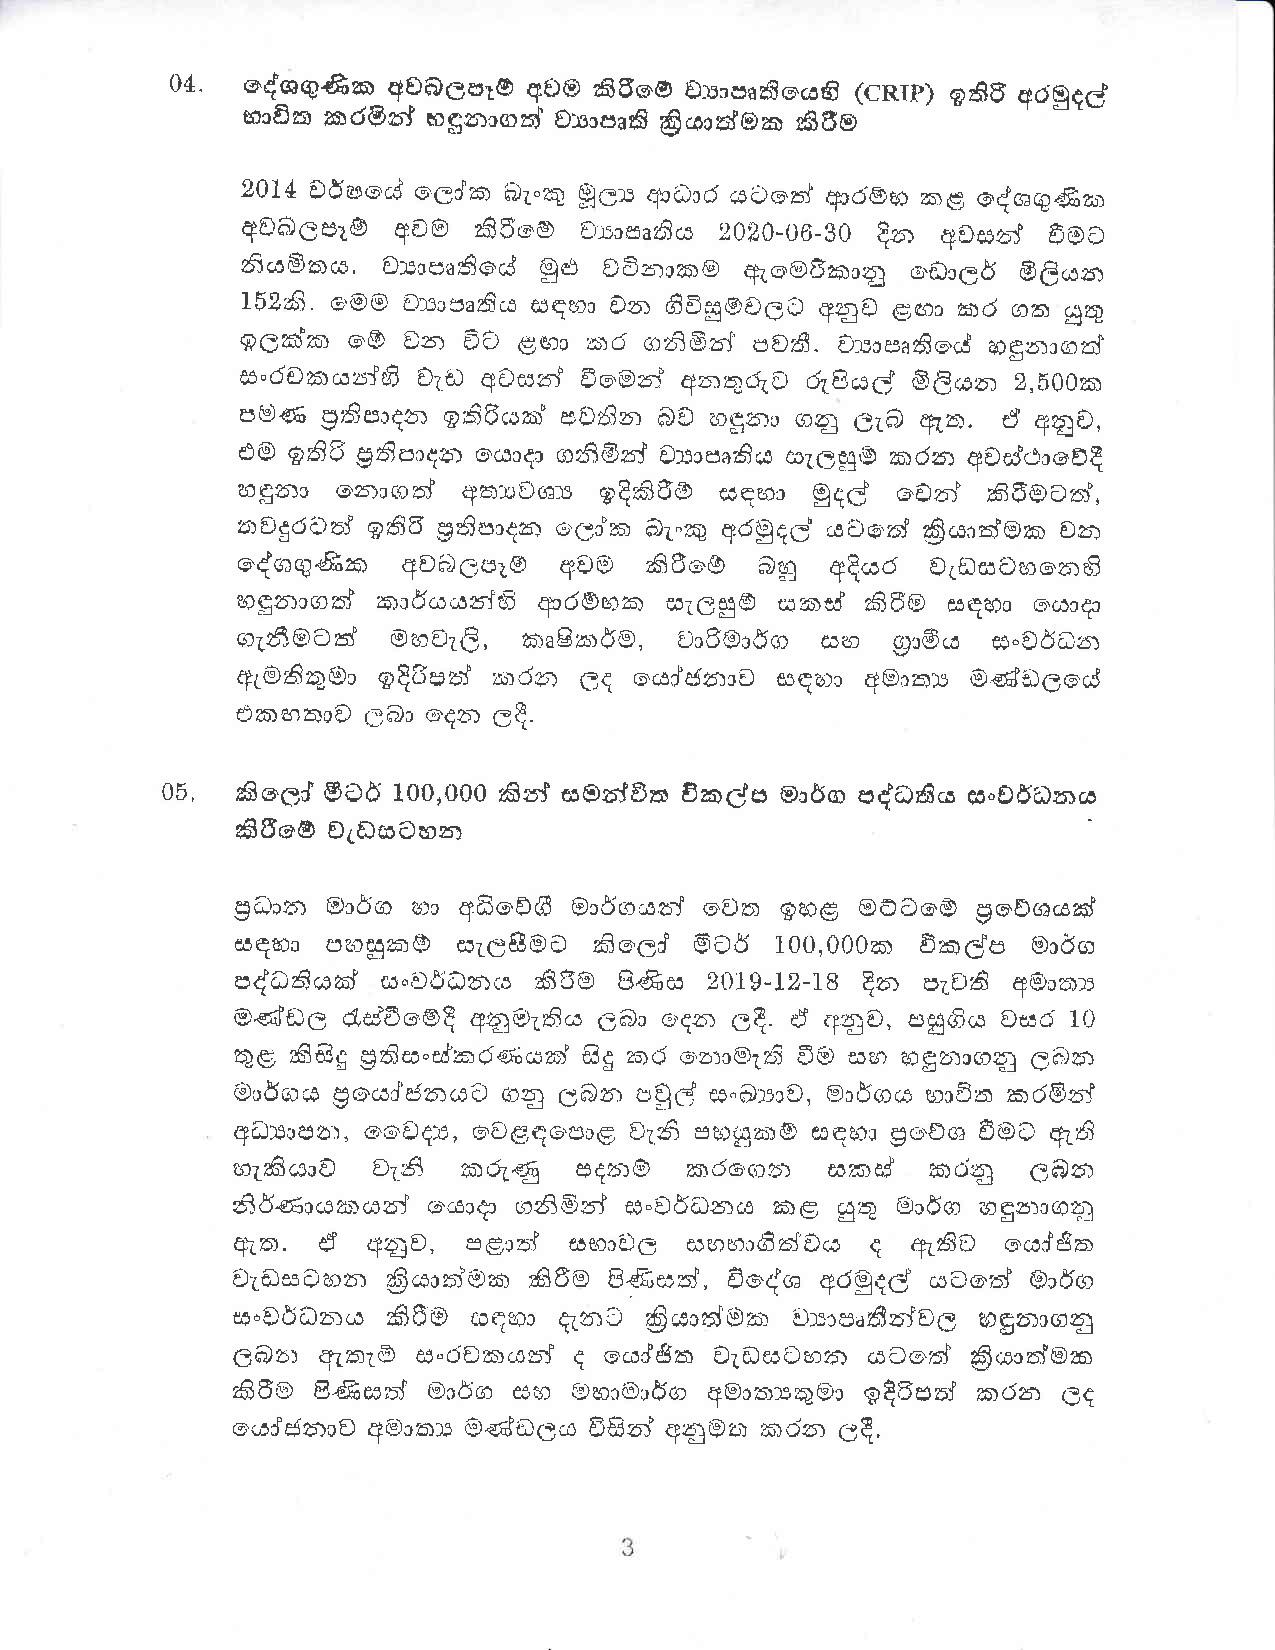 Cabinet Decision on 05.02.2020 page 003